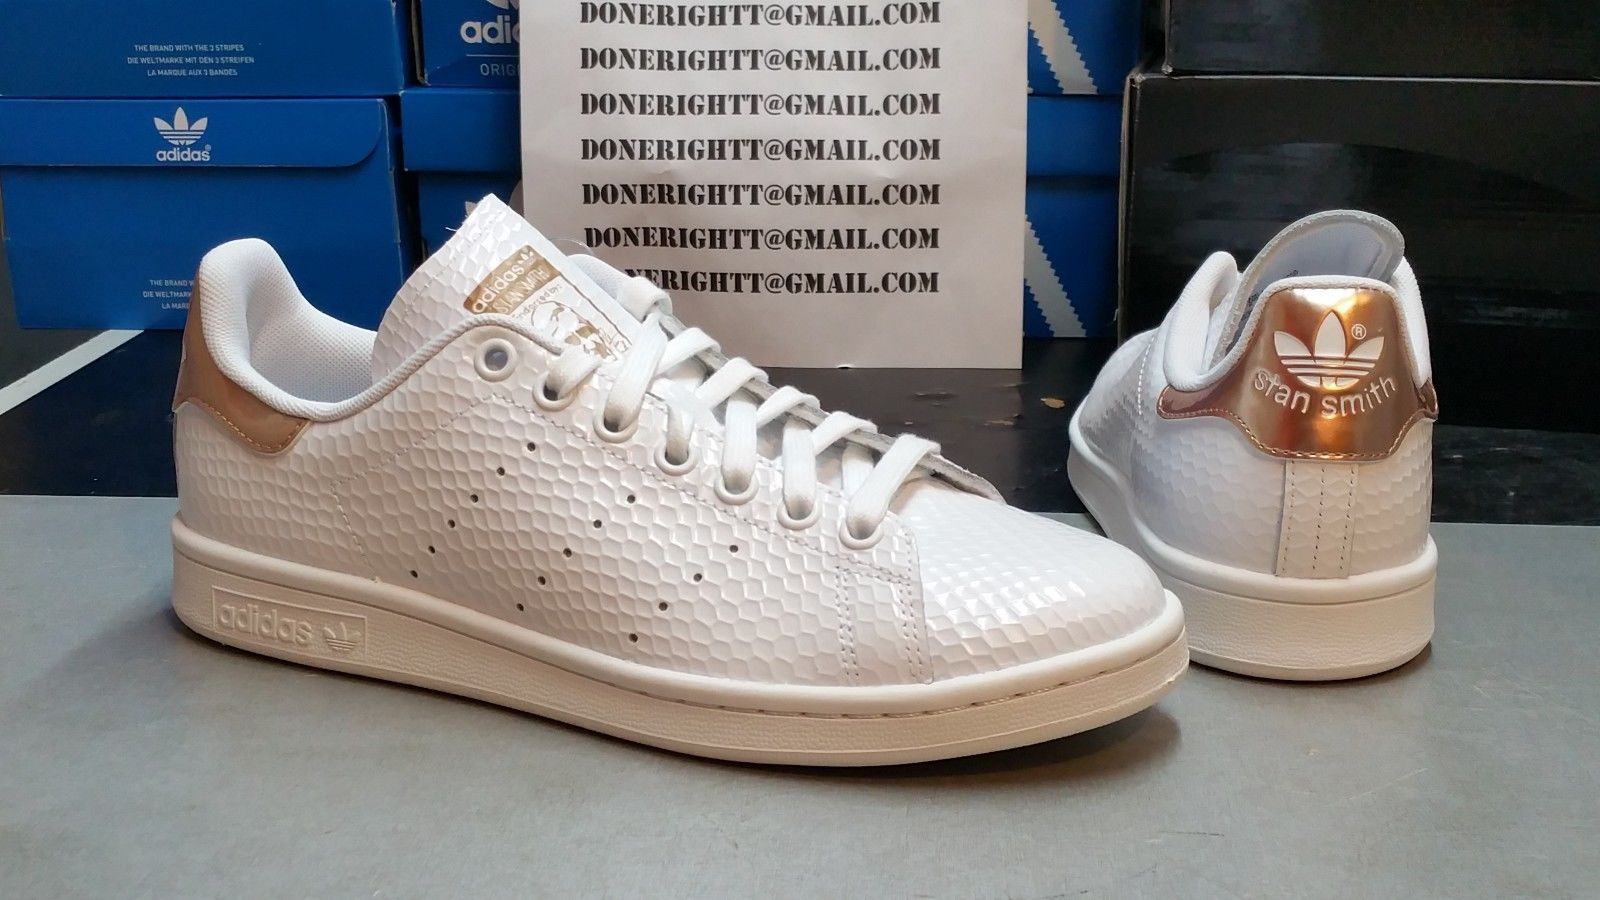 d36e426aede Womens Adidas Stan Smith Copper White Kettle Snakeskin Metallic Rose Gold  Yeezy